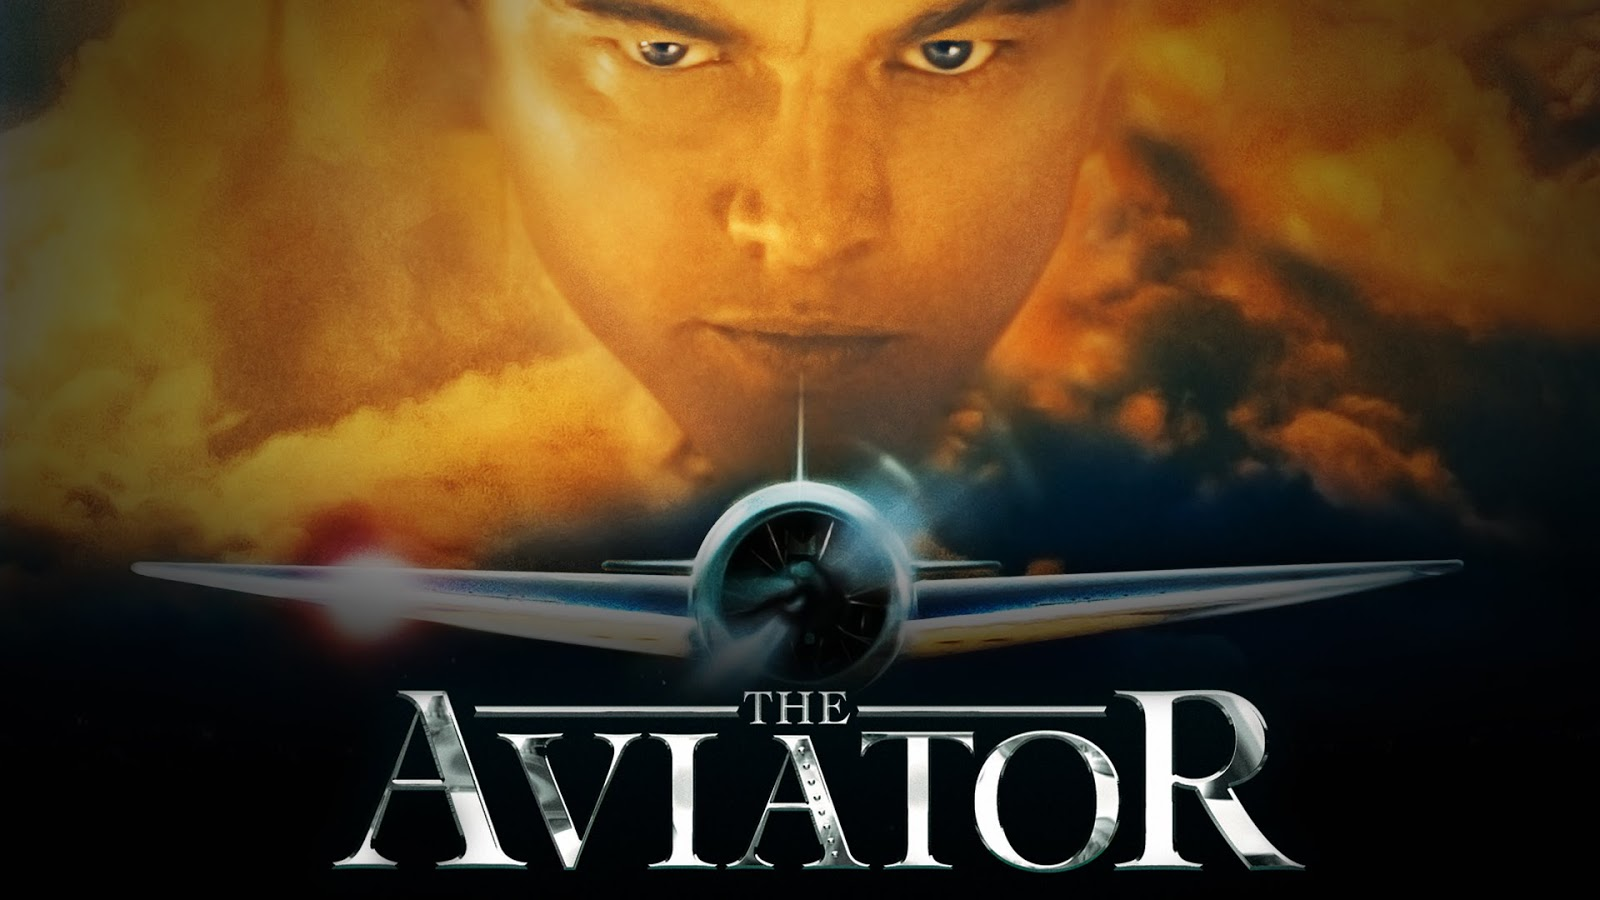 Entrepreneur movies #16: The Aviator